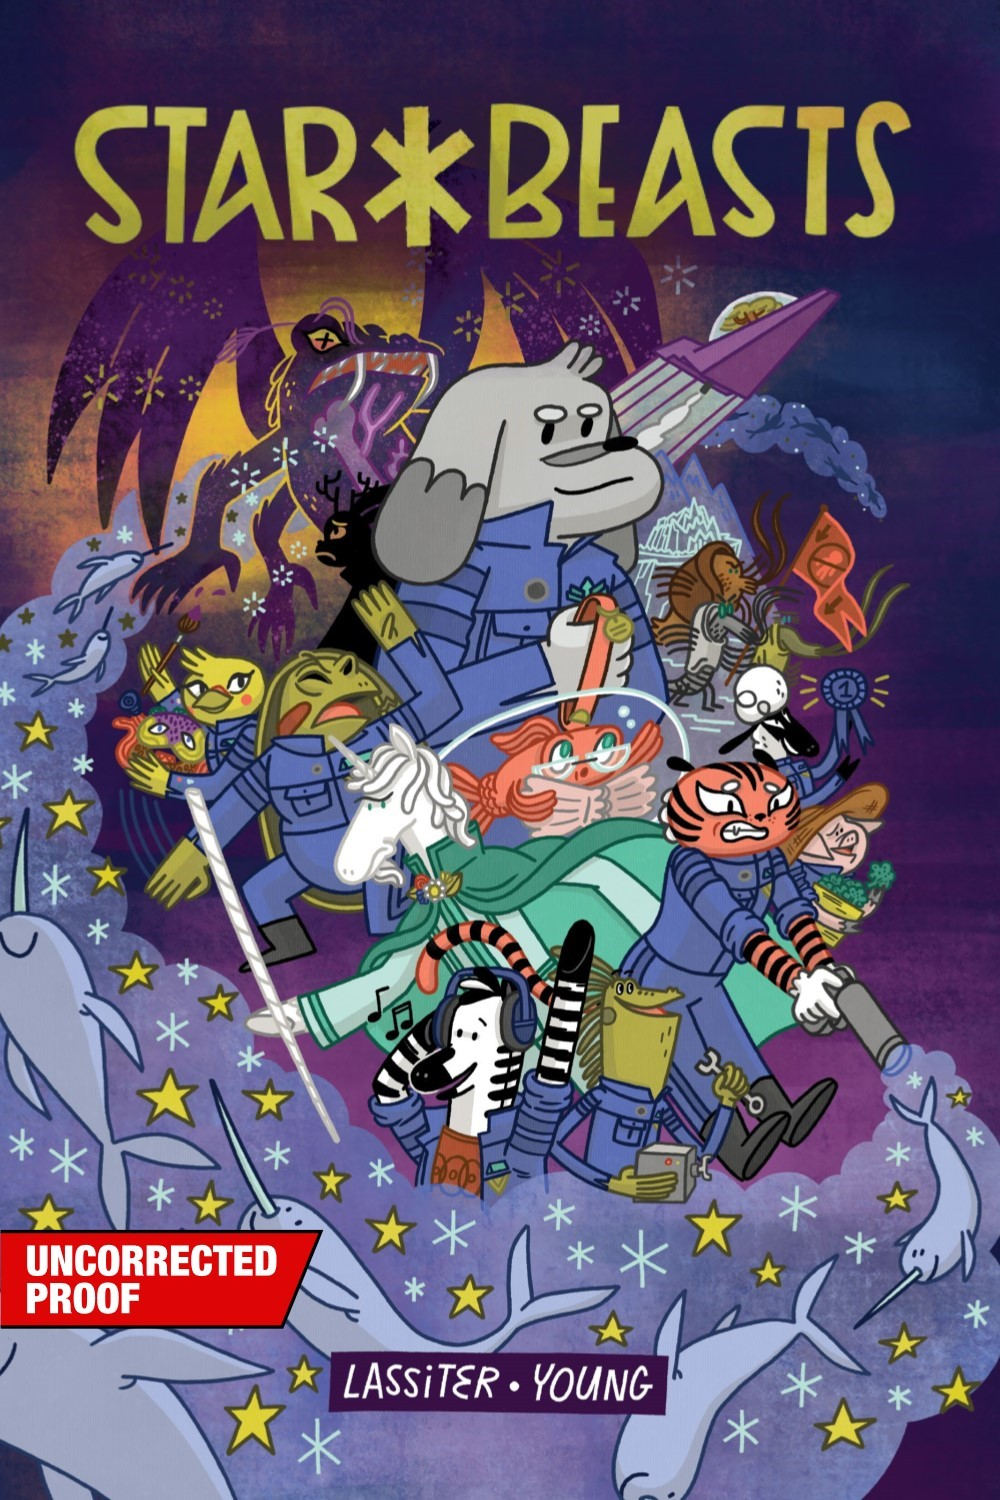 STARBEASTS-MARKETING-001 ComicList: Oni Press New Releases for 08/18/2021